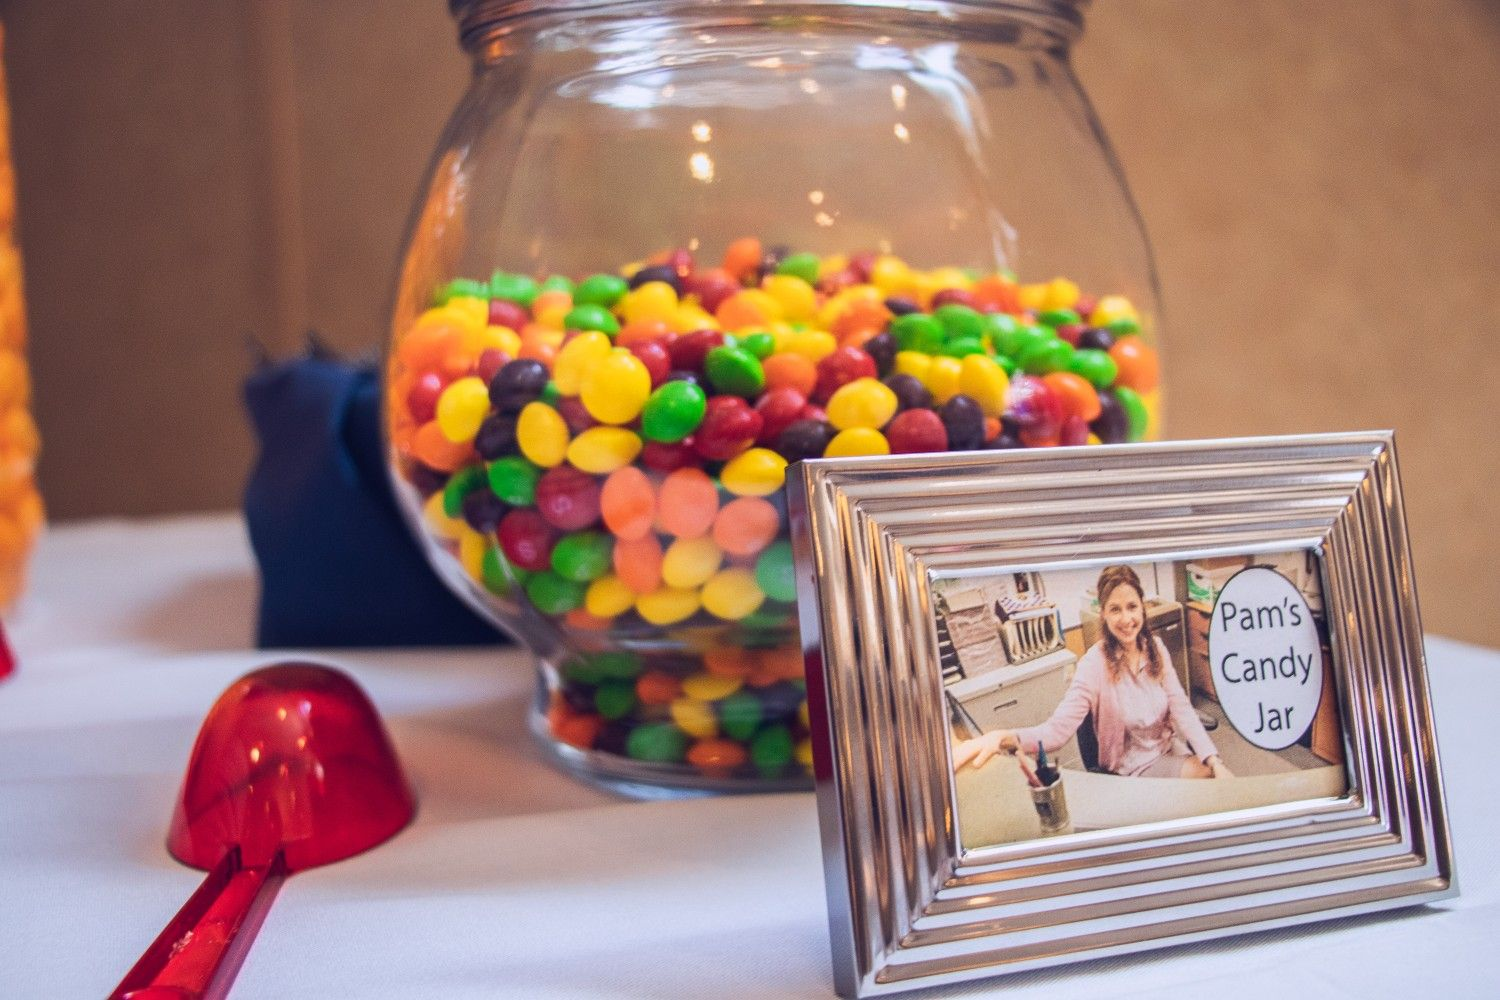 Sweet Table For My Sisters Bridal Party With The Office Themed Treats Including Pam S Candy Jar Office Themed Party Office Birthday Office Parties